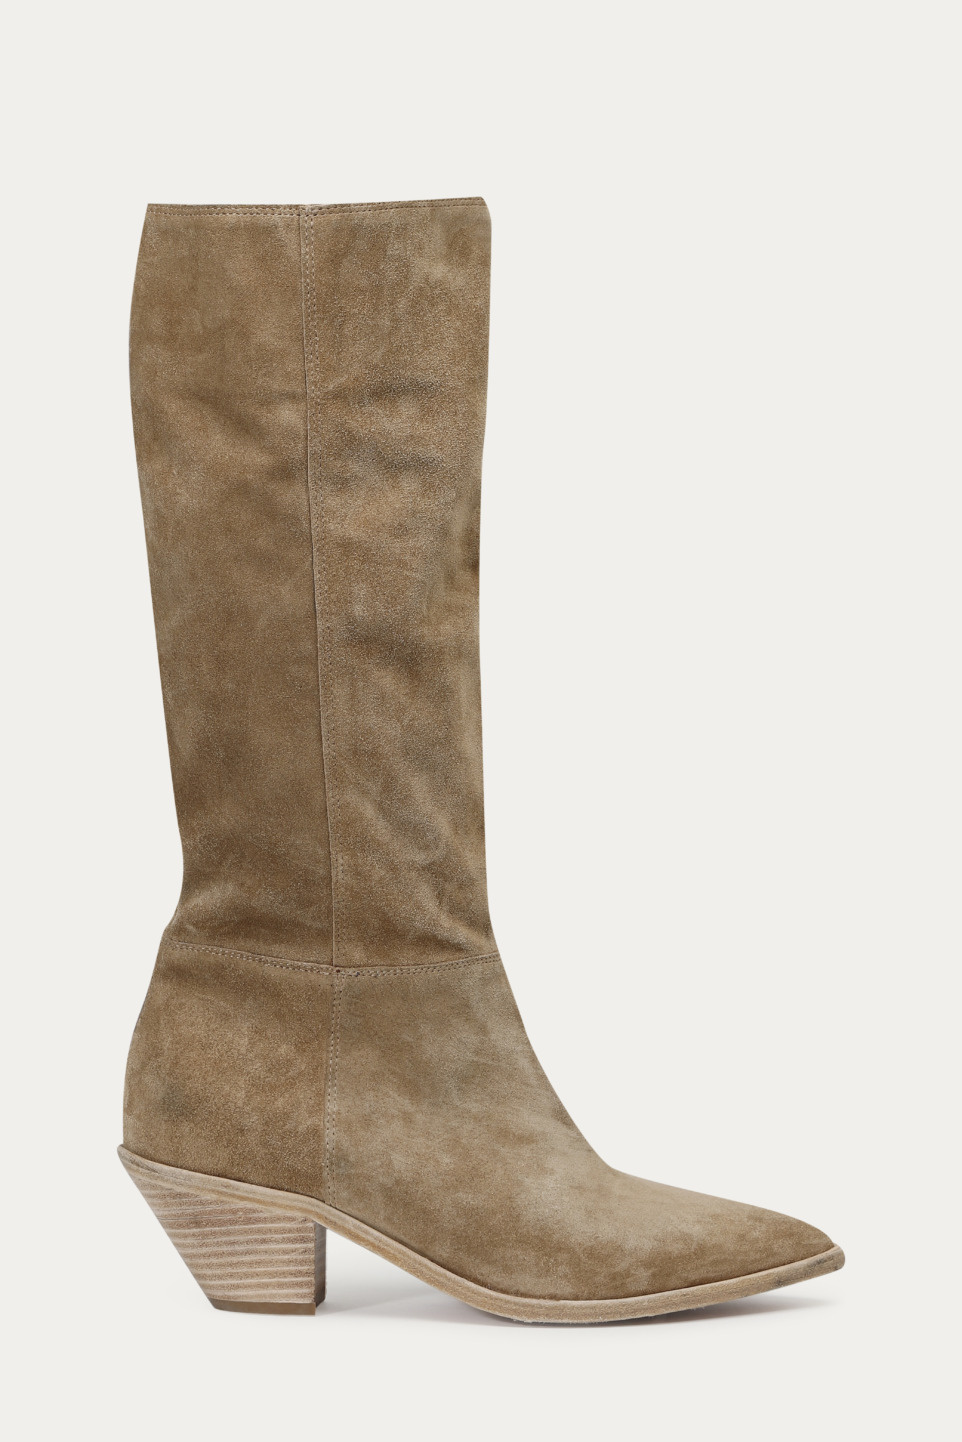 Cowby Boots - Raw Sable 37-2